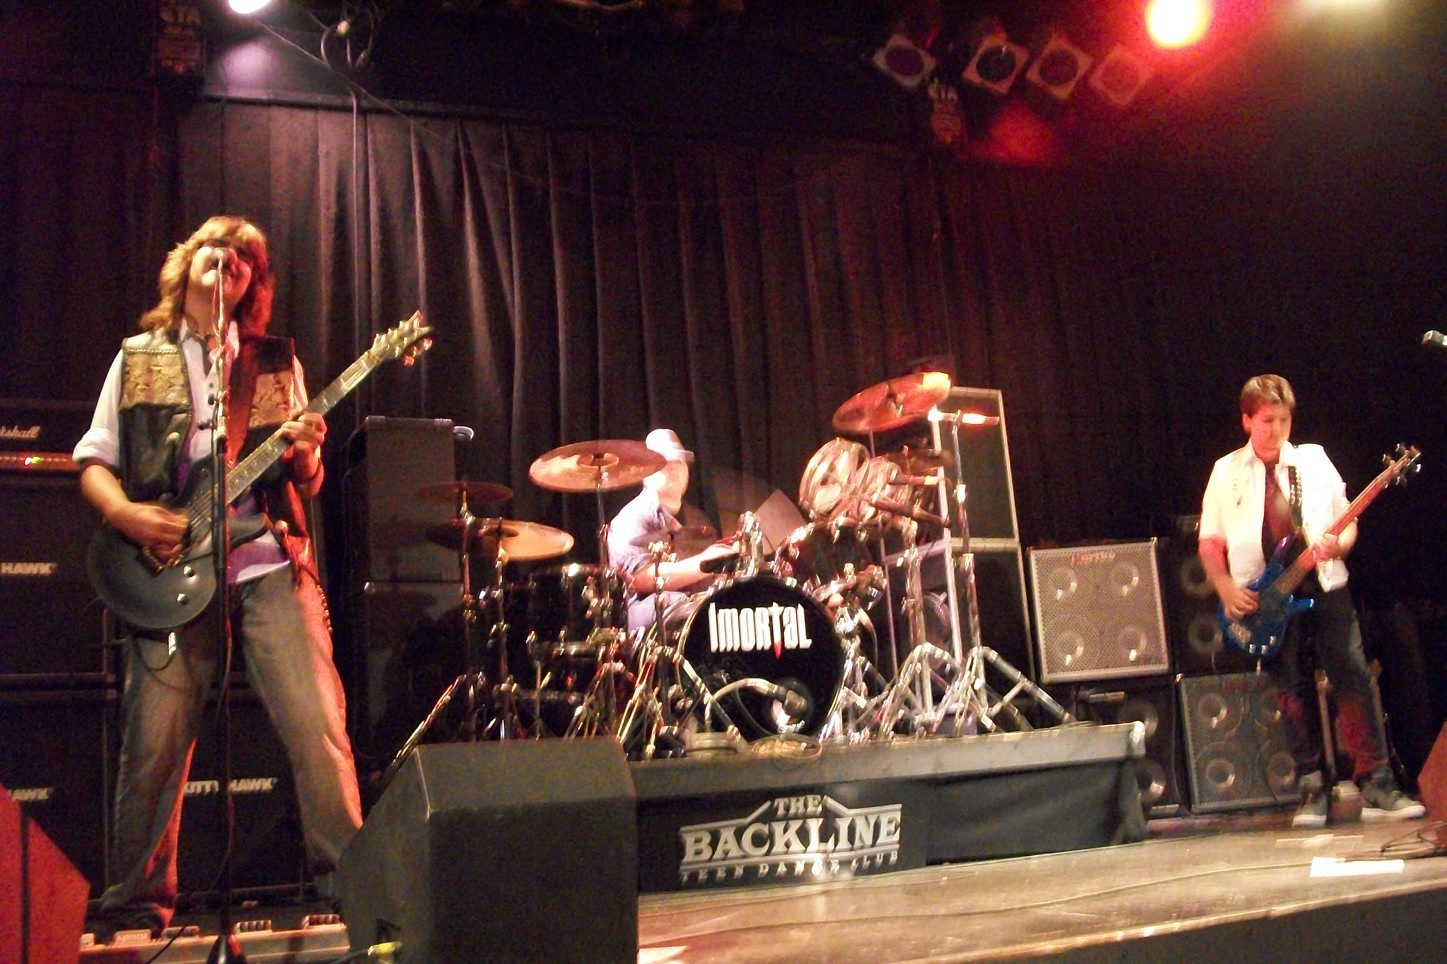 The members of the band Imortal – Zak Bogosian, Trevor Cole and Alex Bogosian– perform at The Backline teen center in Silver Creek. The band performs at the center about once a month.